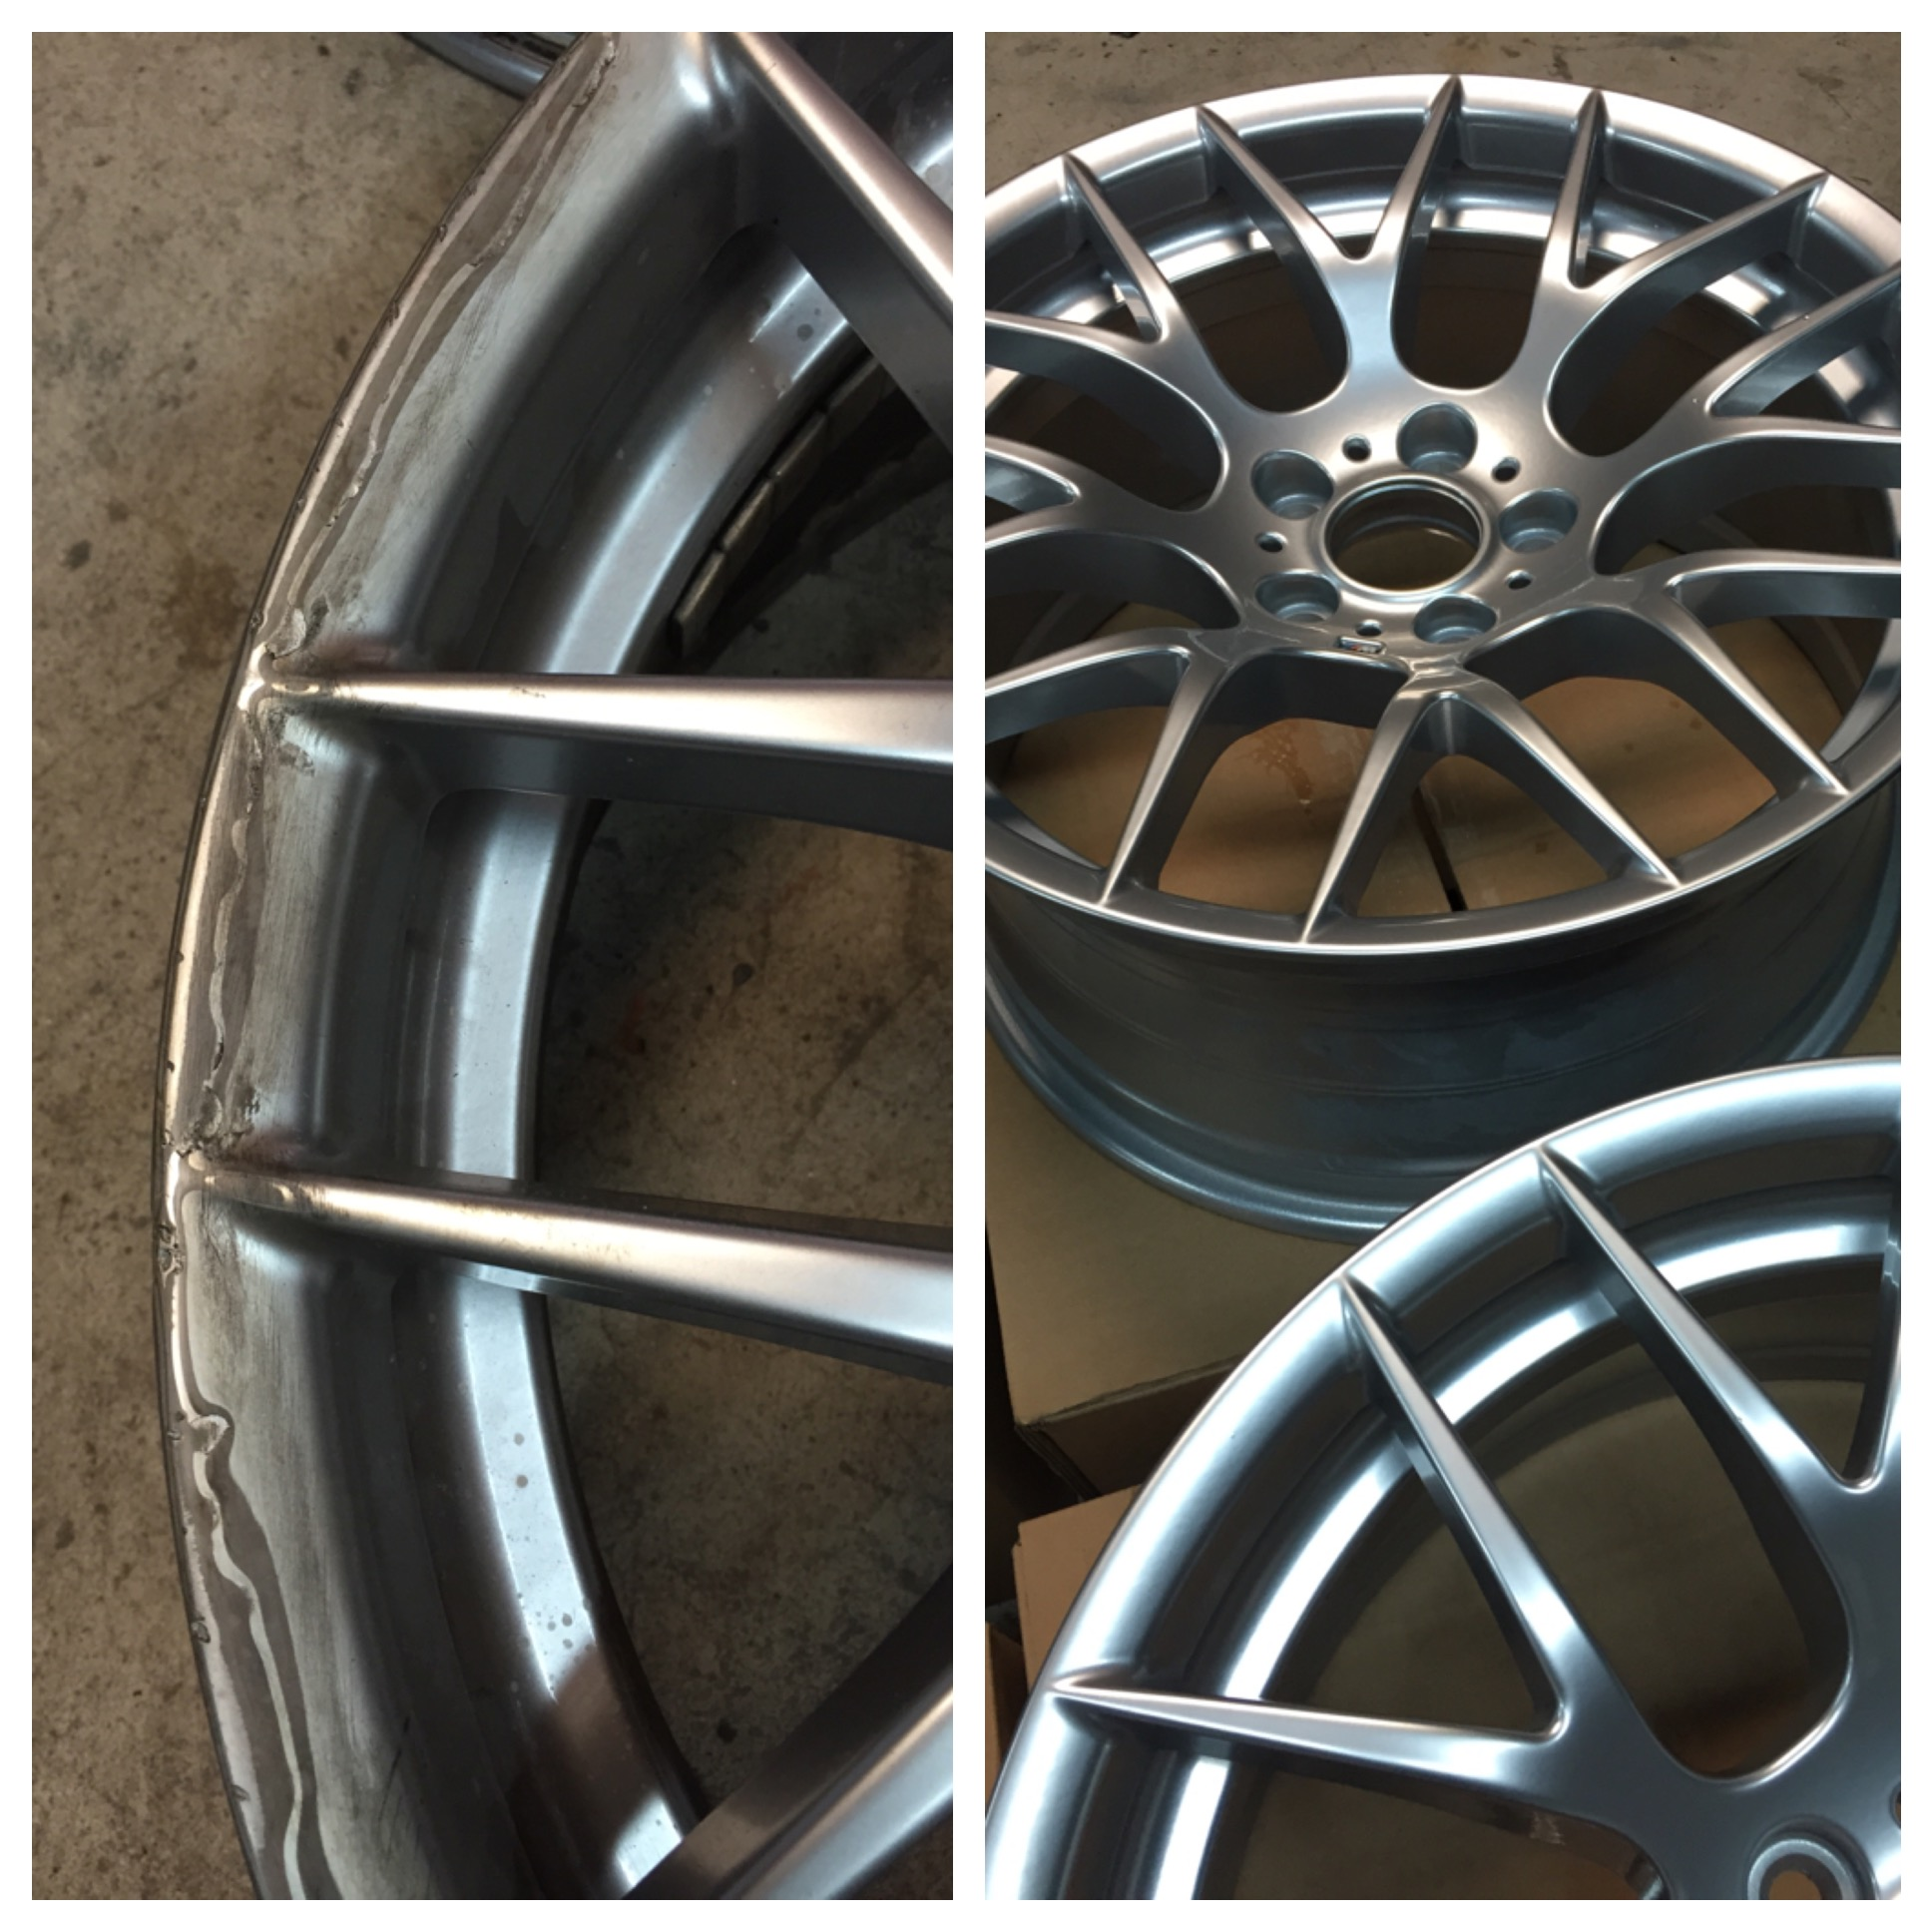 Freshly repaired and powder coated wheel.. the finished product after powder coating is incredible !